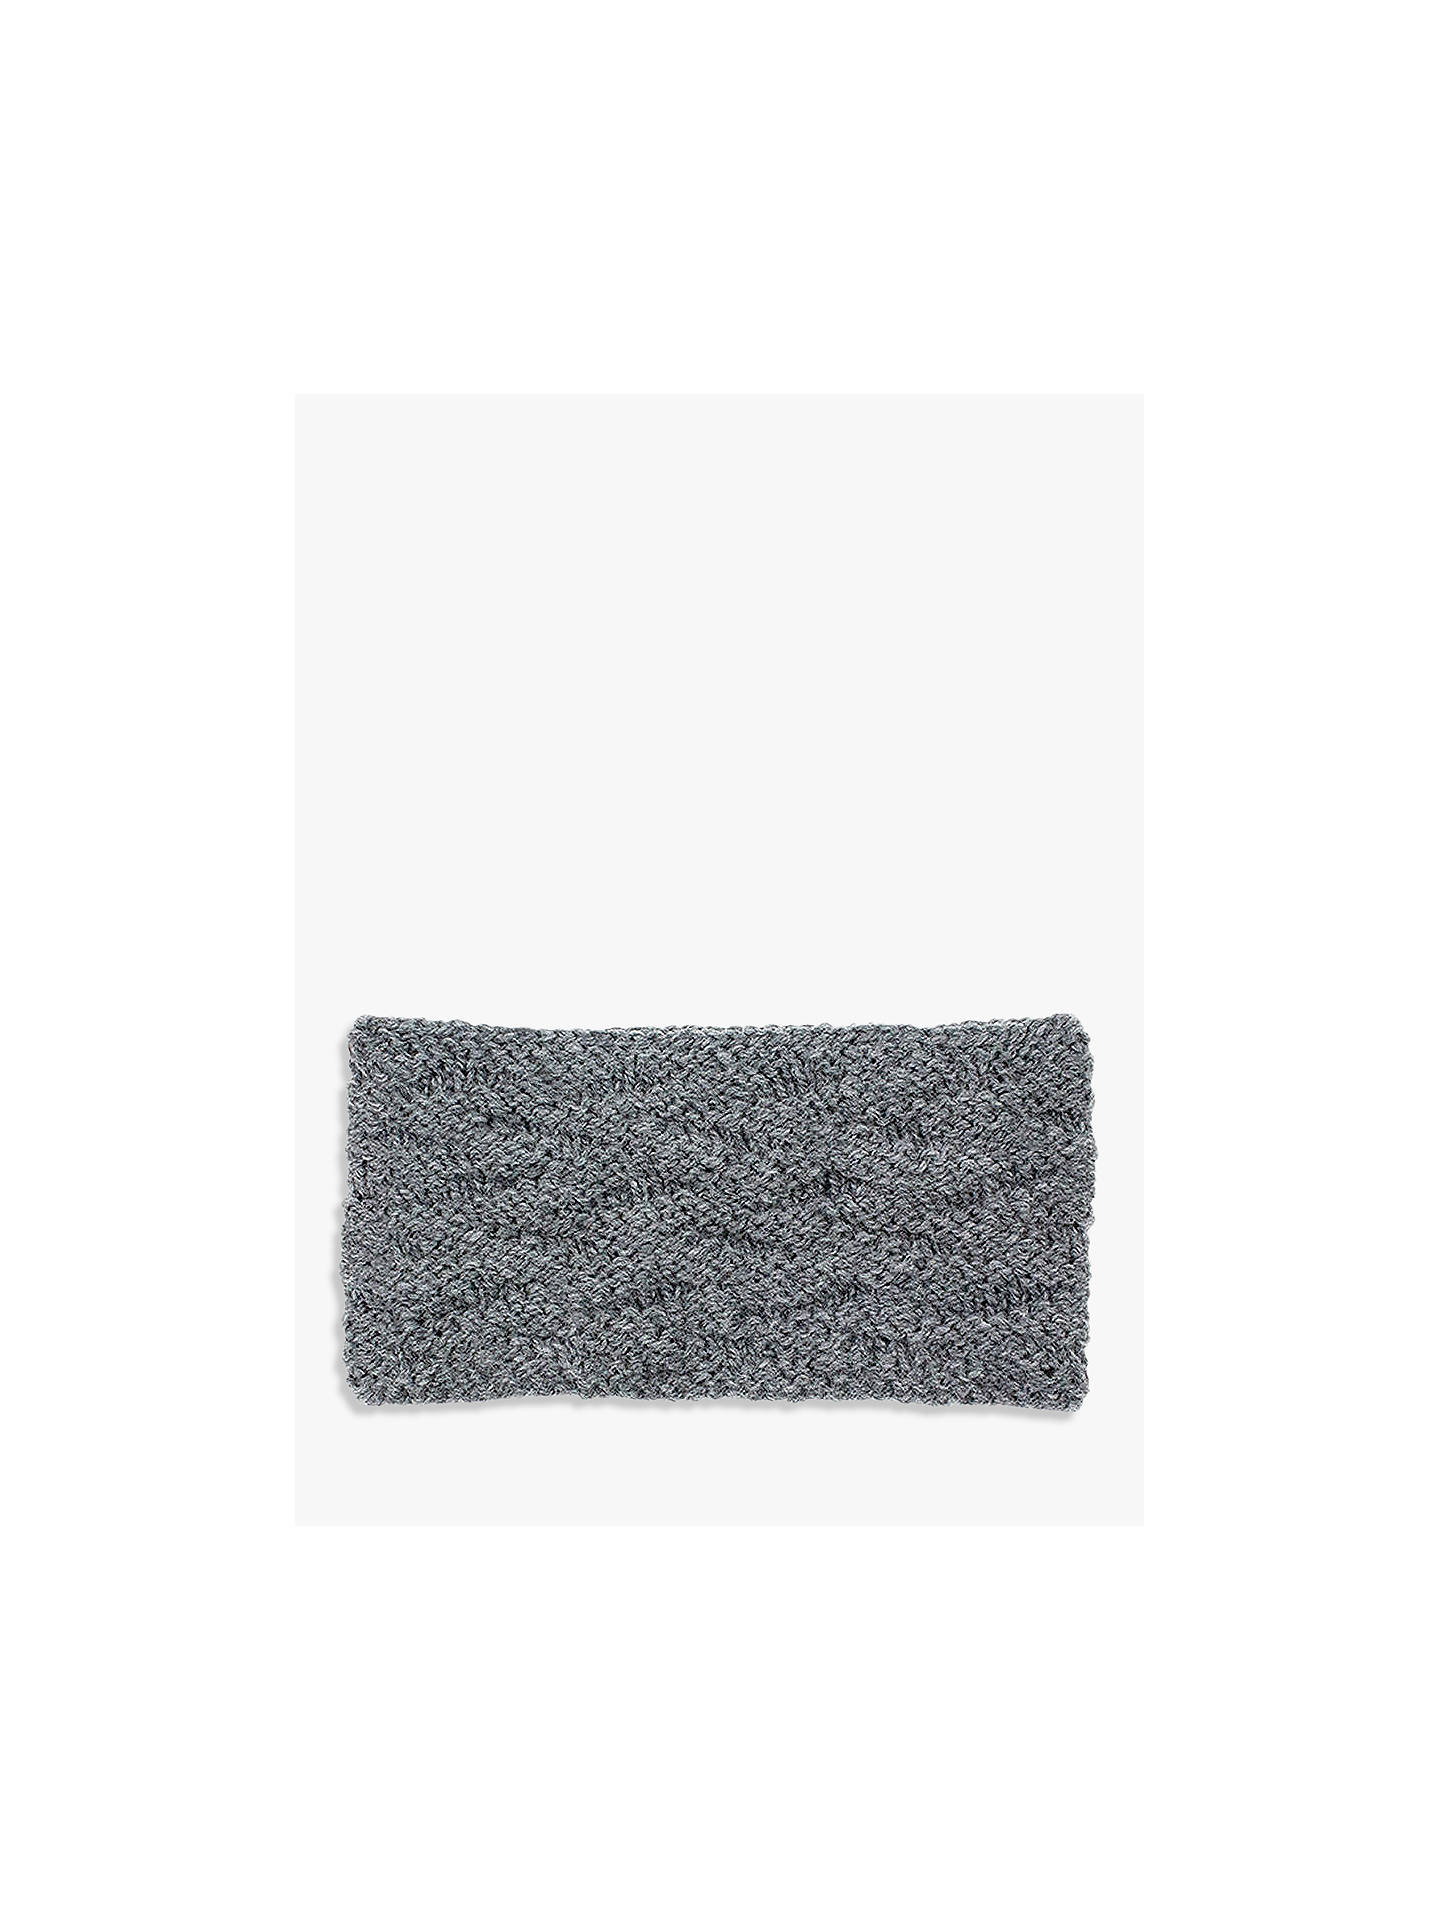 BuyTOFT Zeolite Headband Knitting Kit Online at johnlewis.com